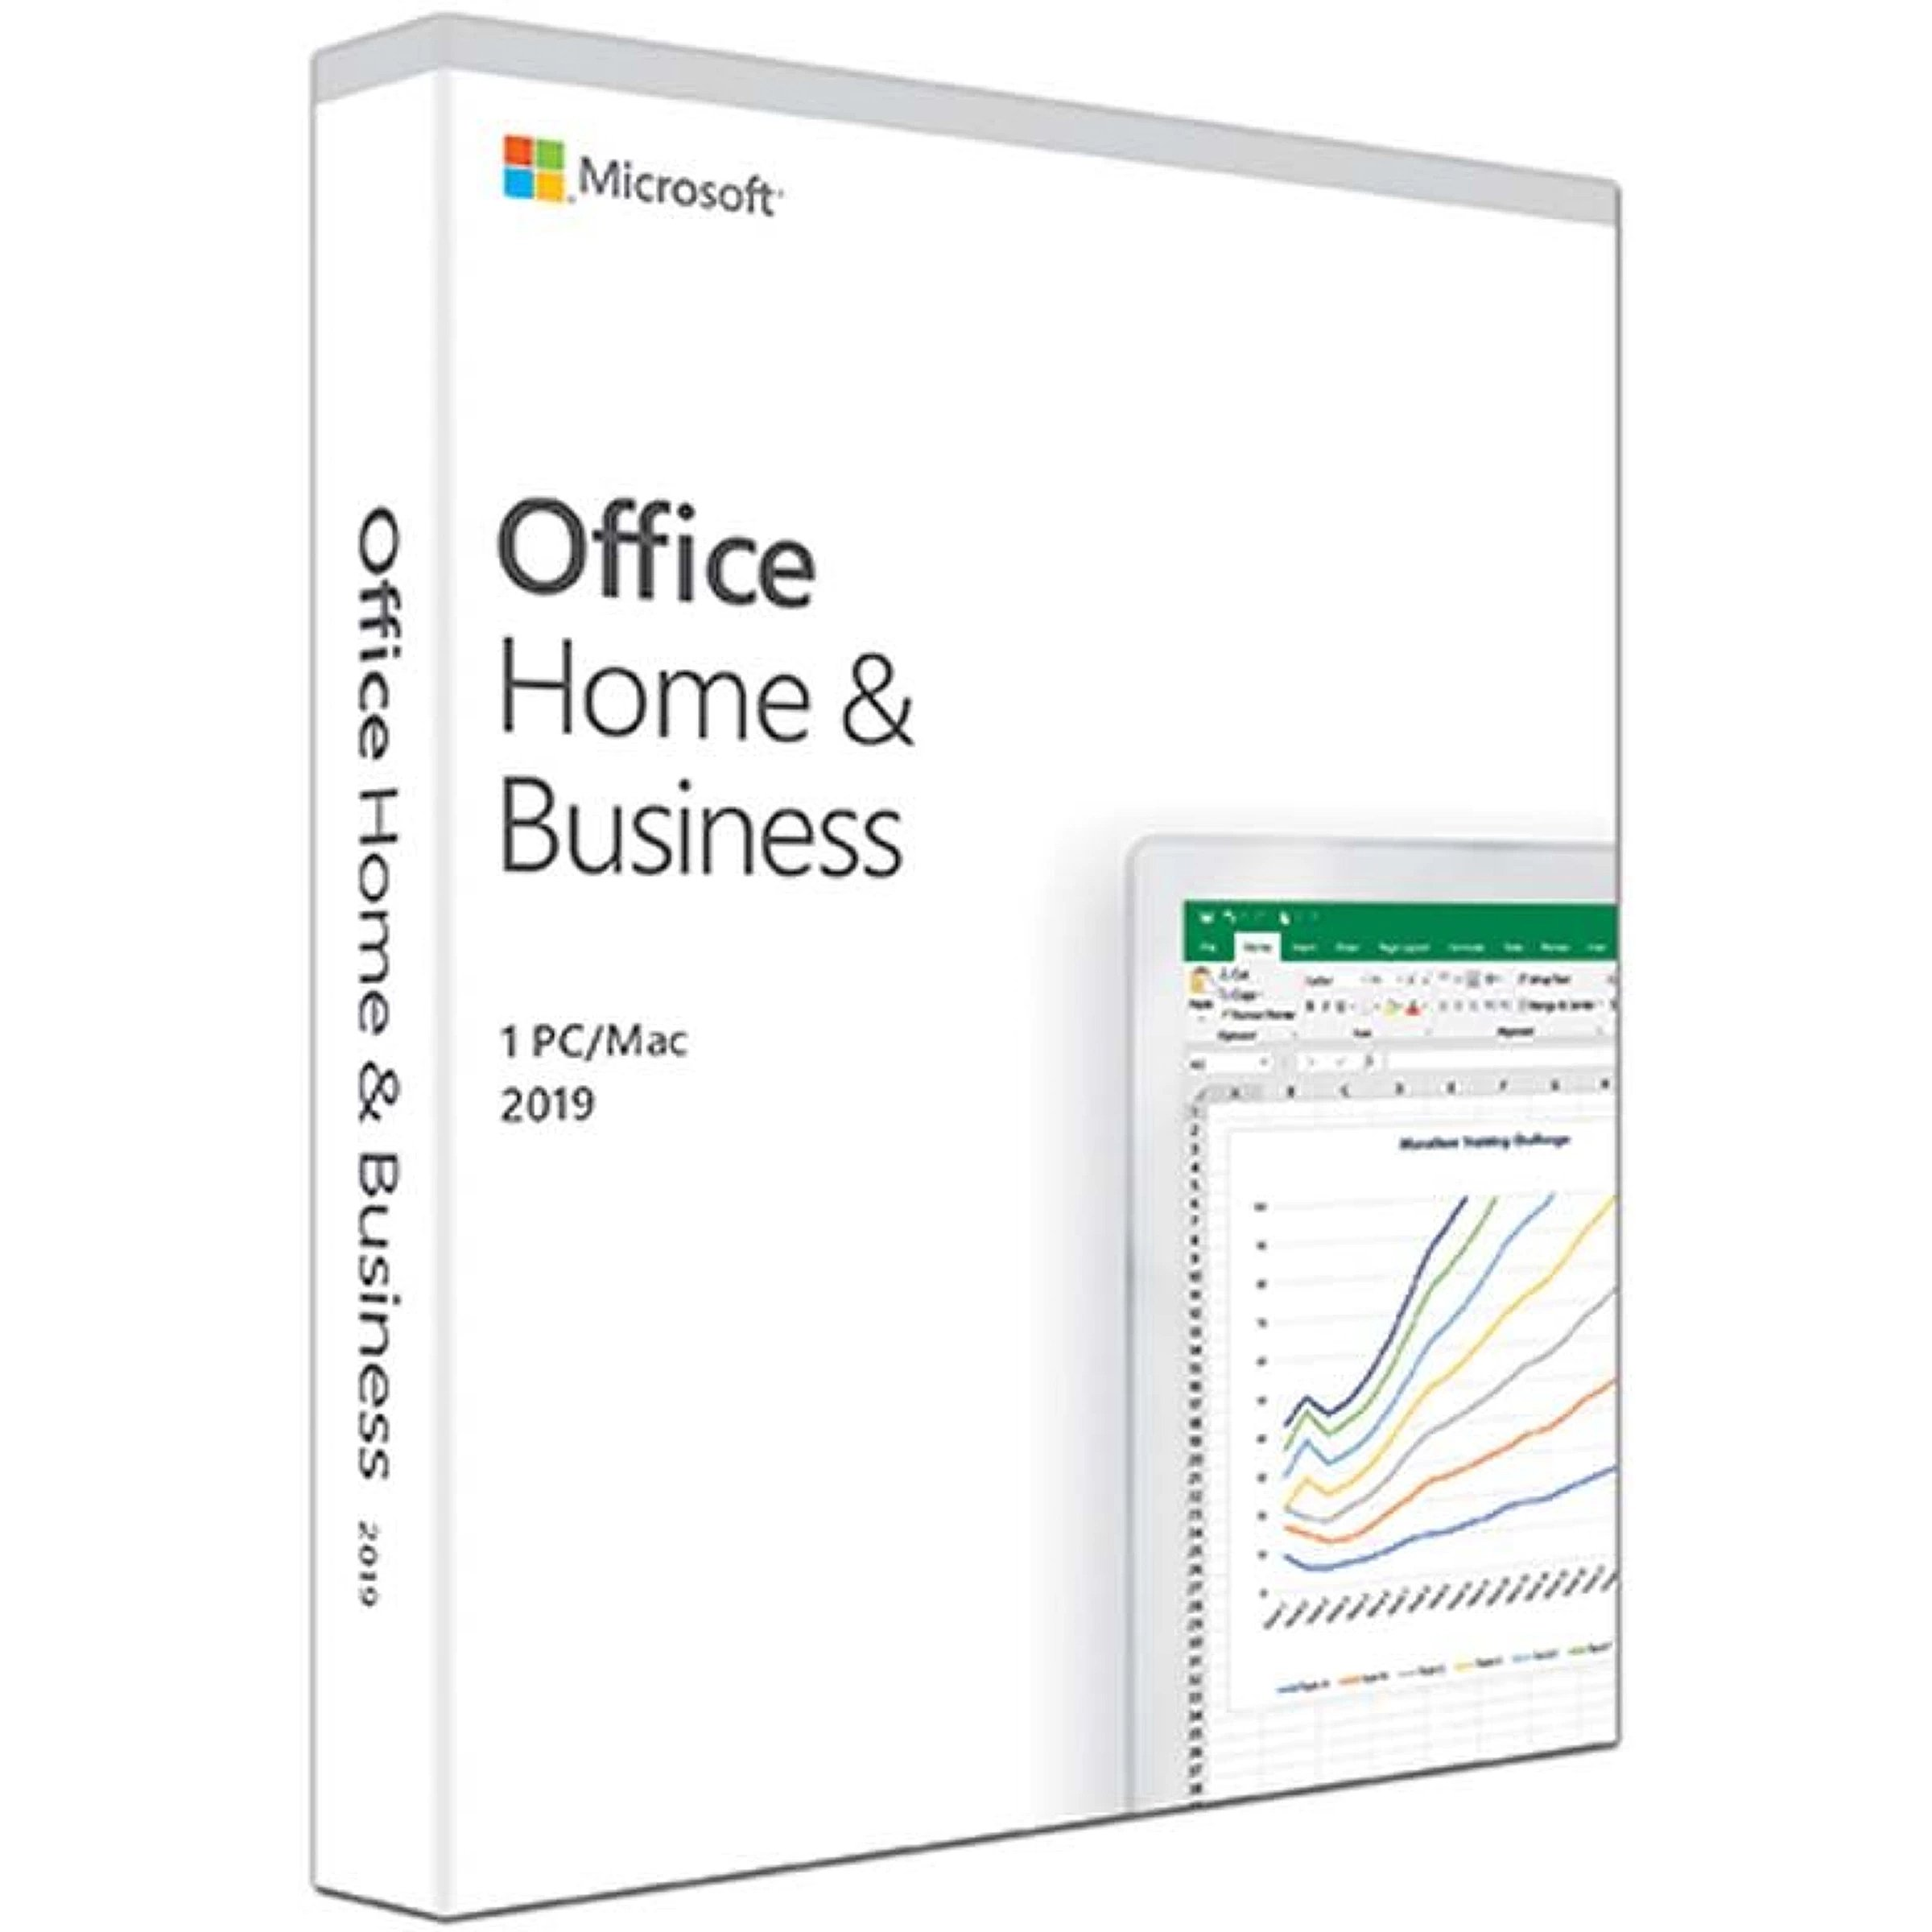 Microsoft Office Home & Business 2019, English